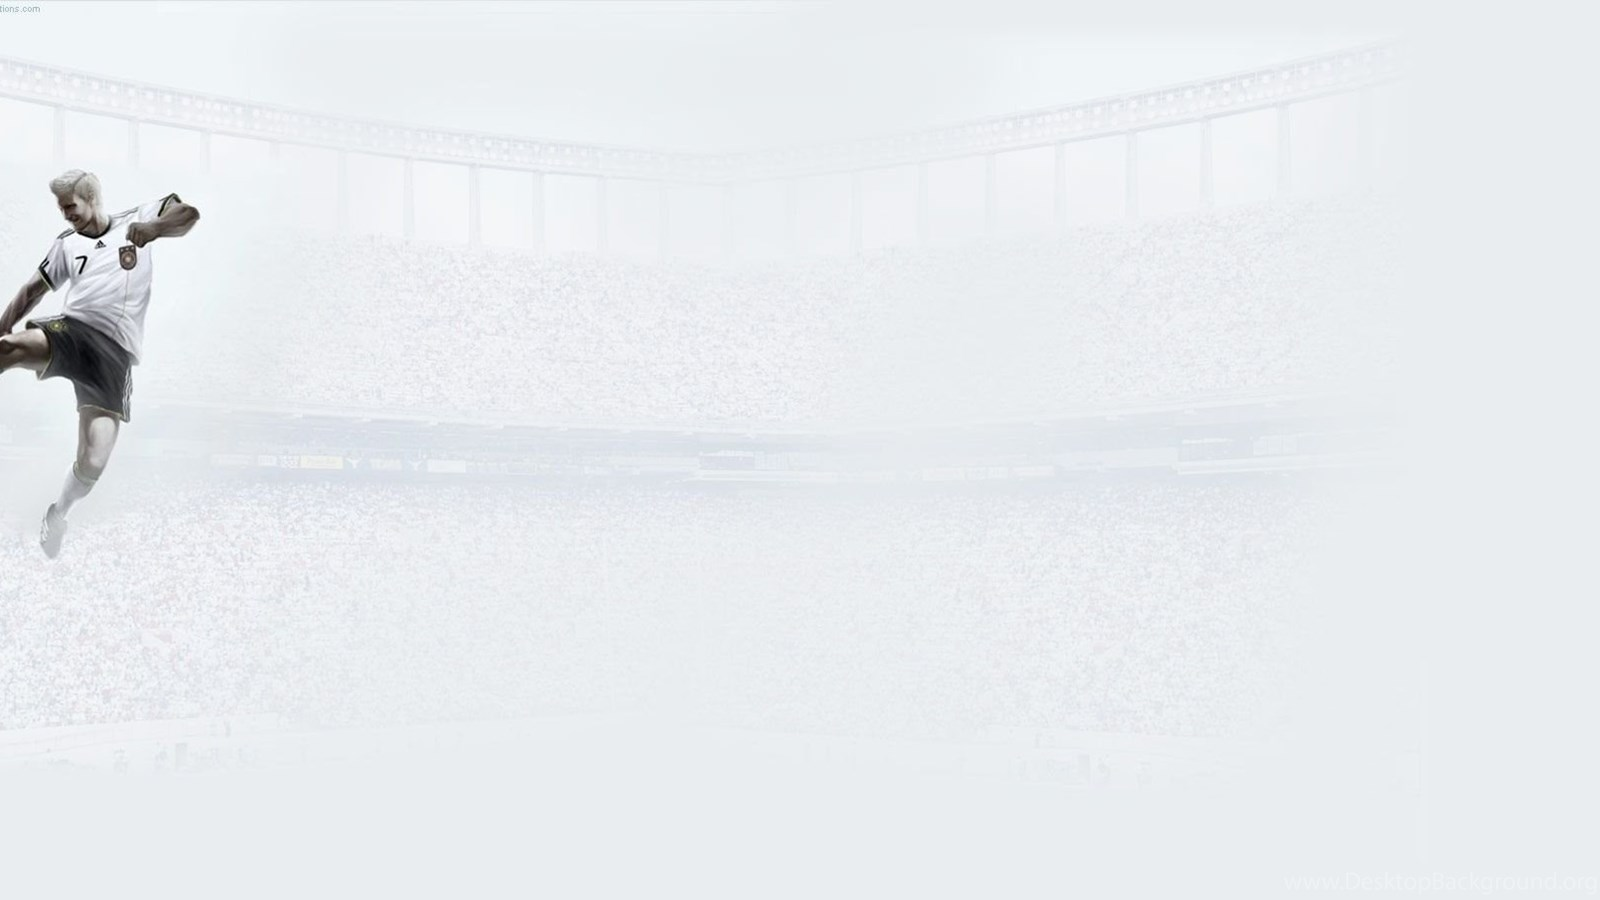 Sports background for powerpoint